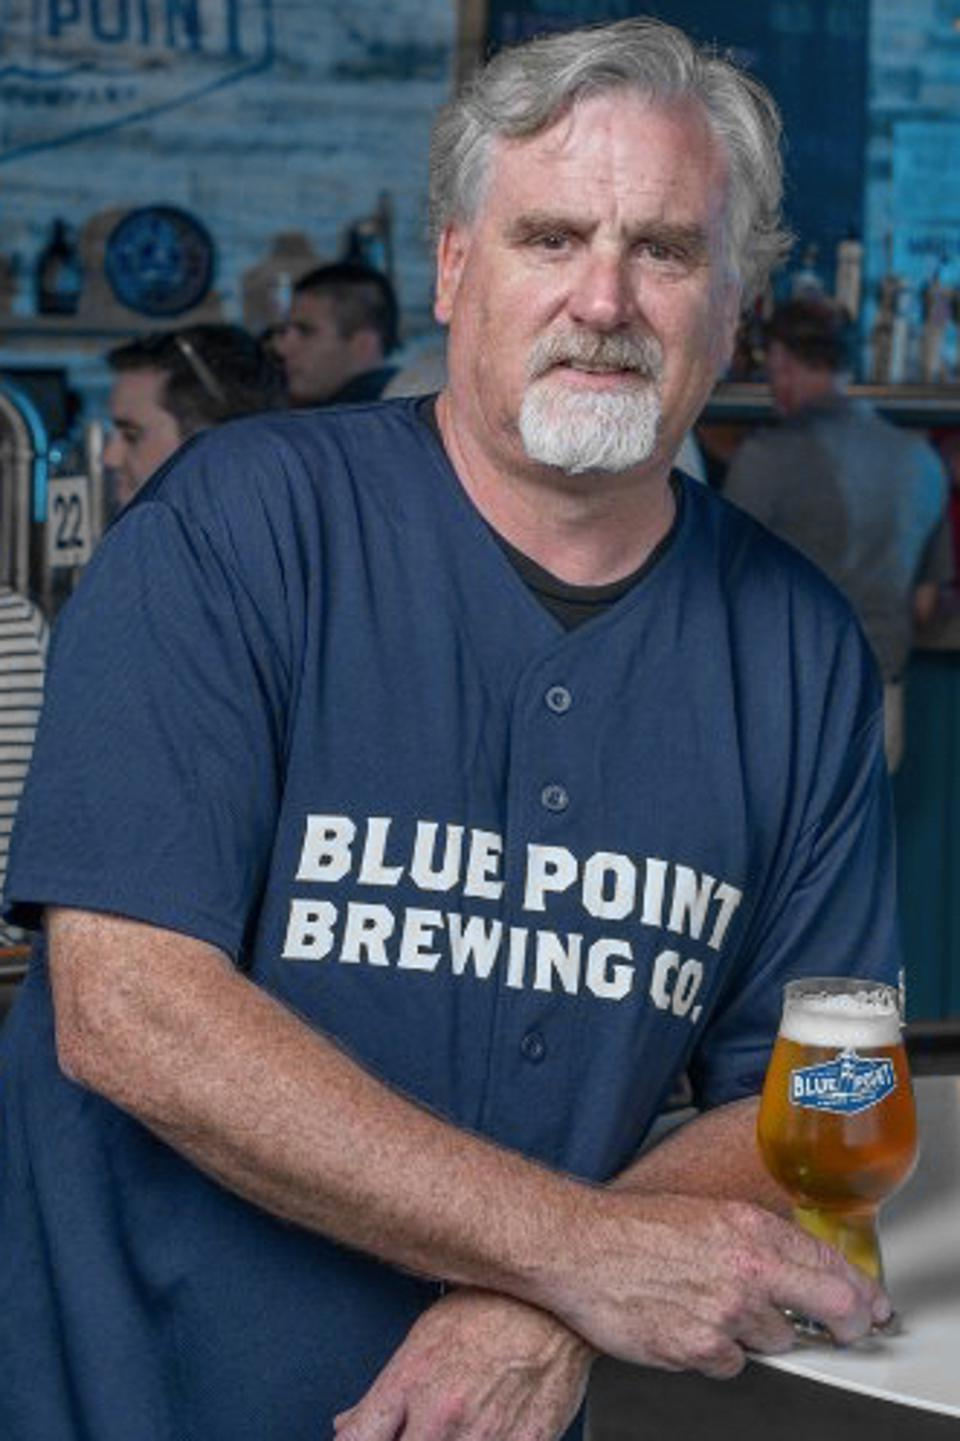 Mark Burford is the founder of Blue Point Brewing Company on Long Island.